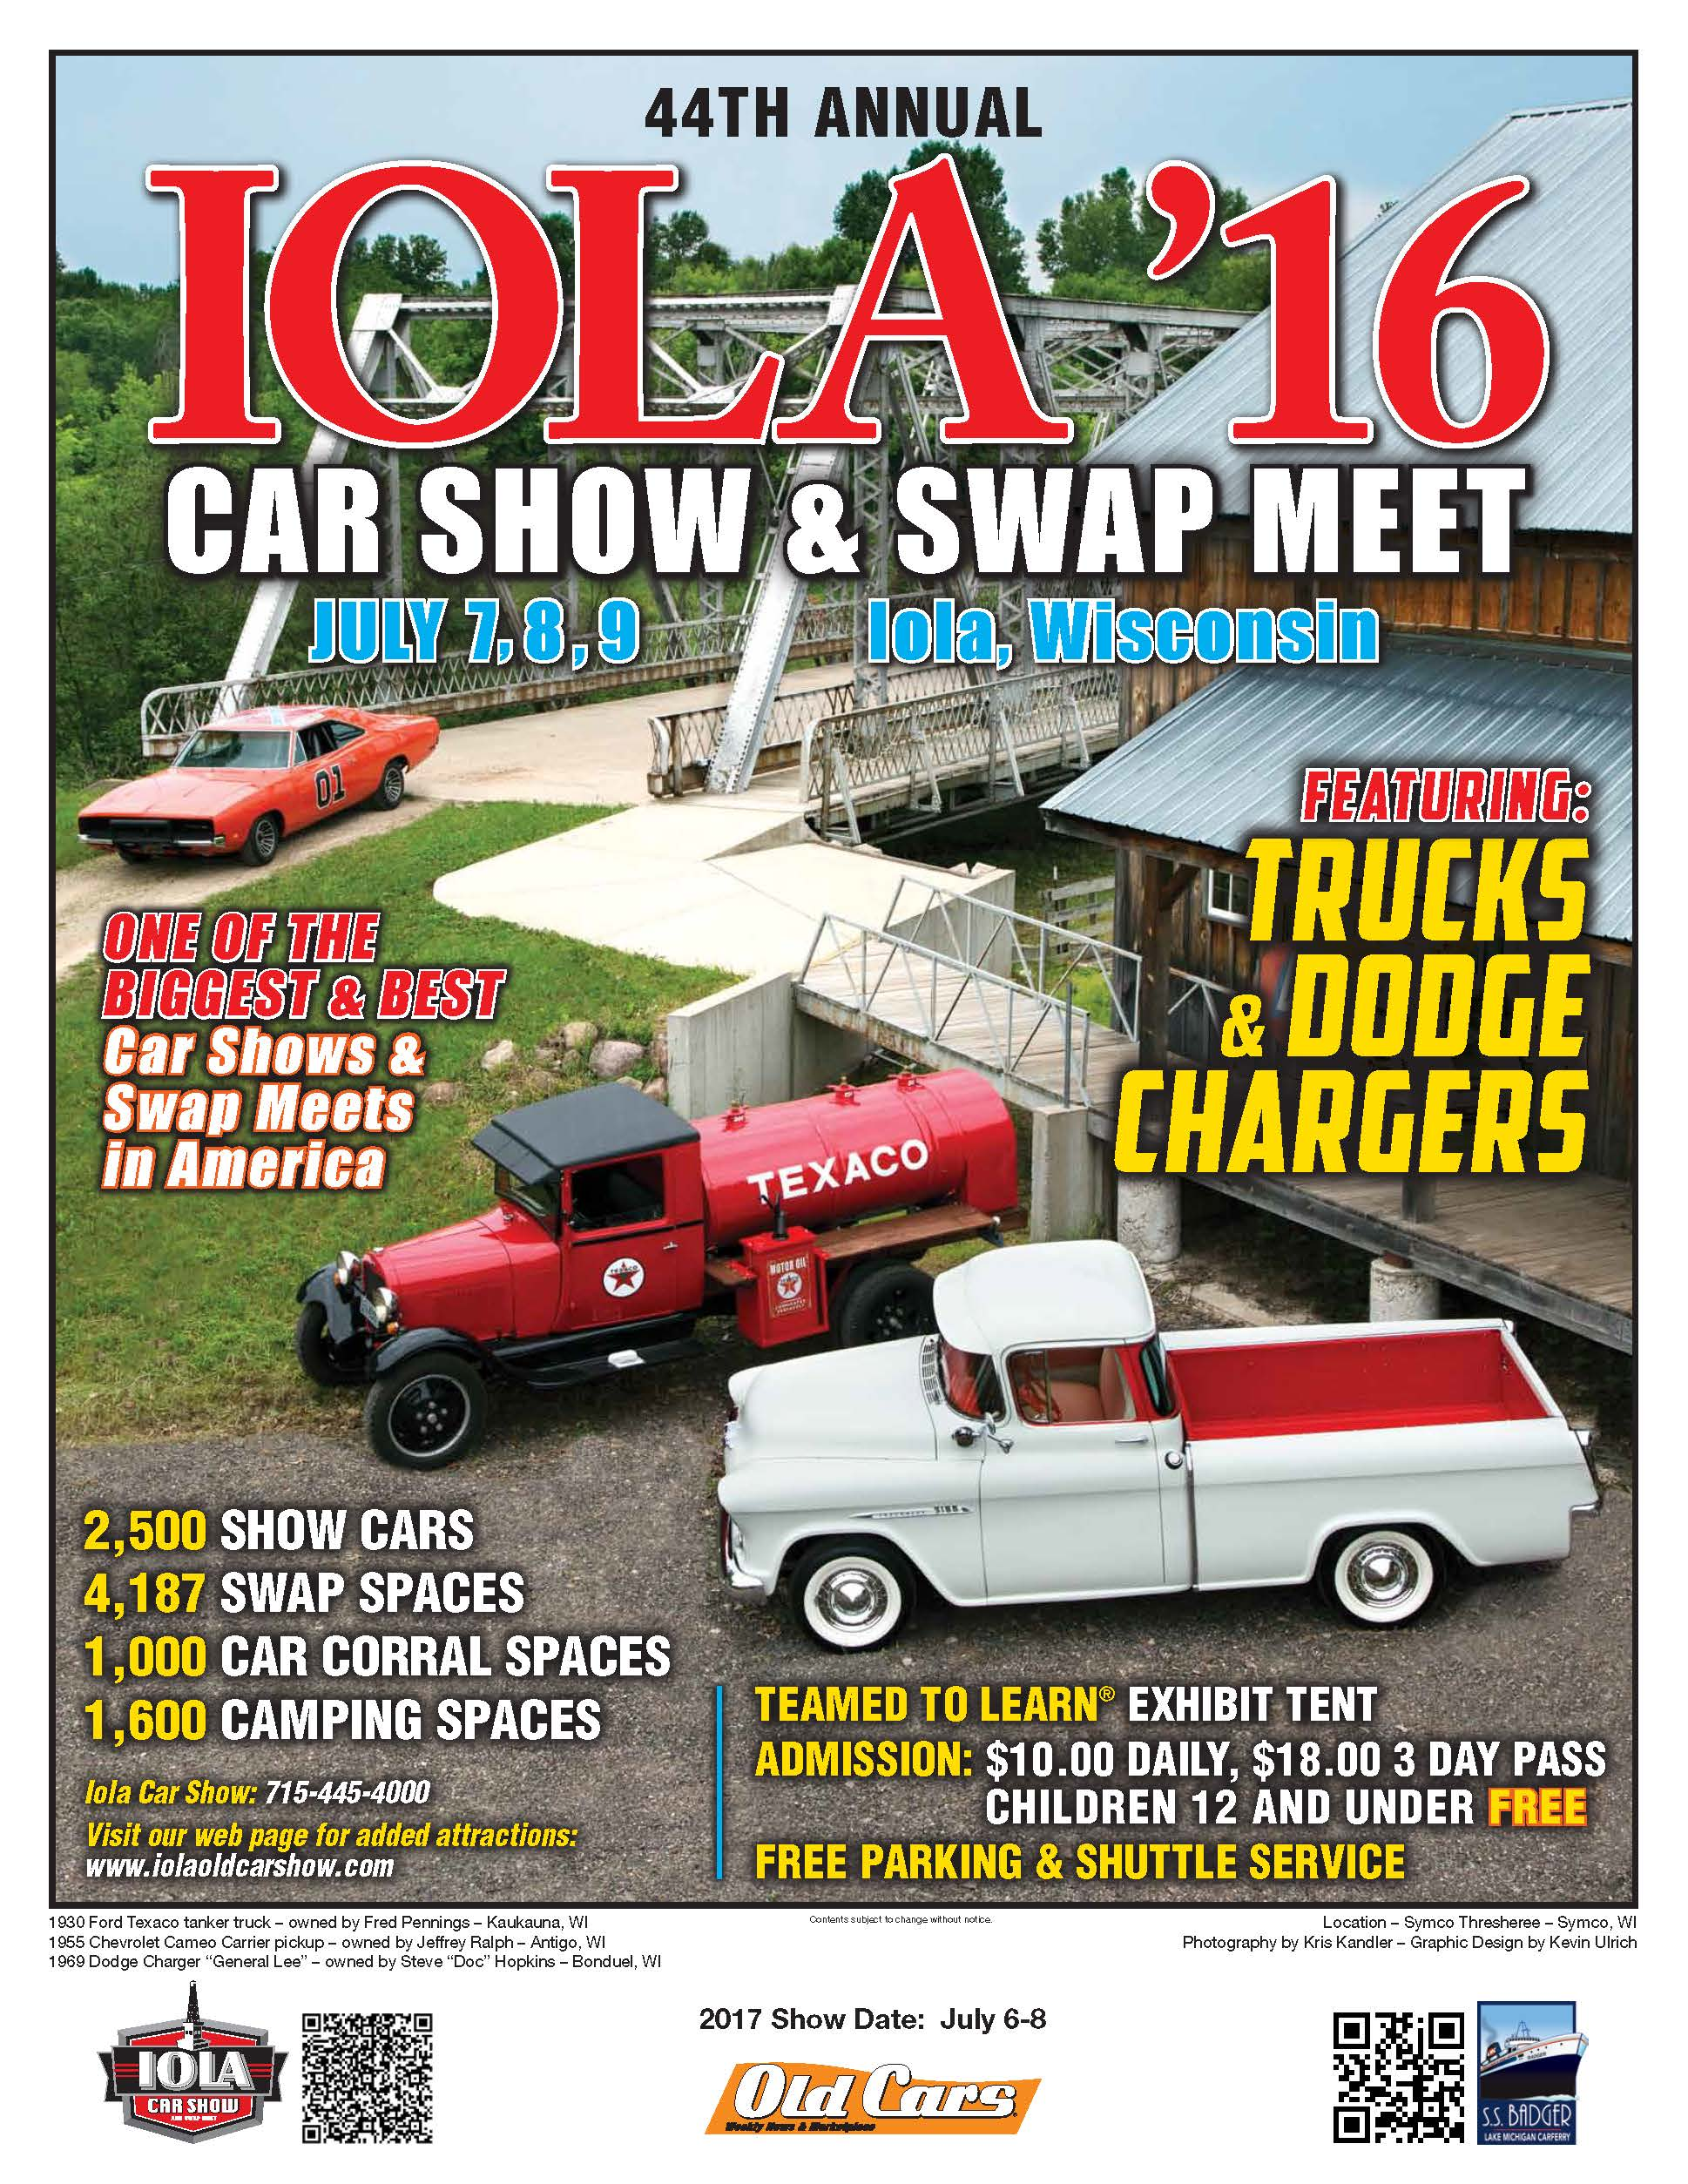 CAR SHOW POSTER Jo Coddington - Iola car show